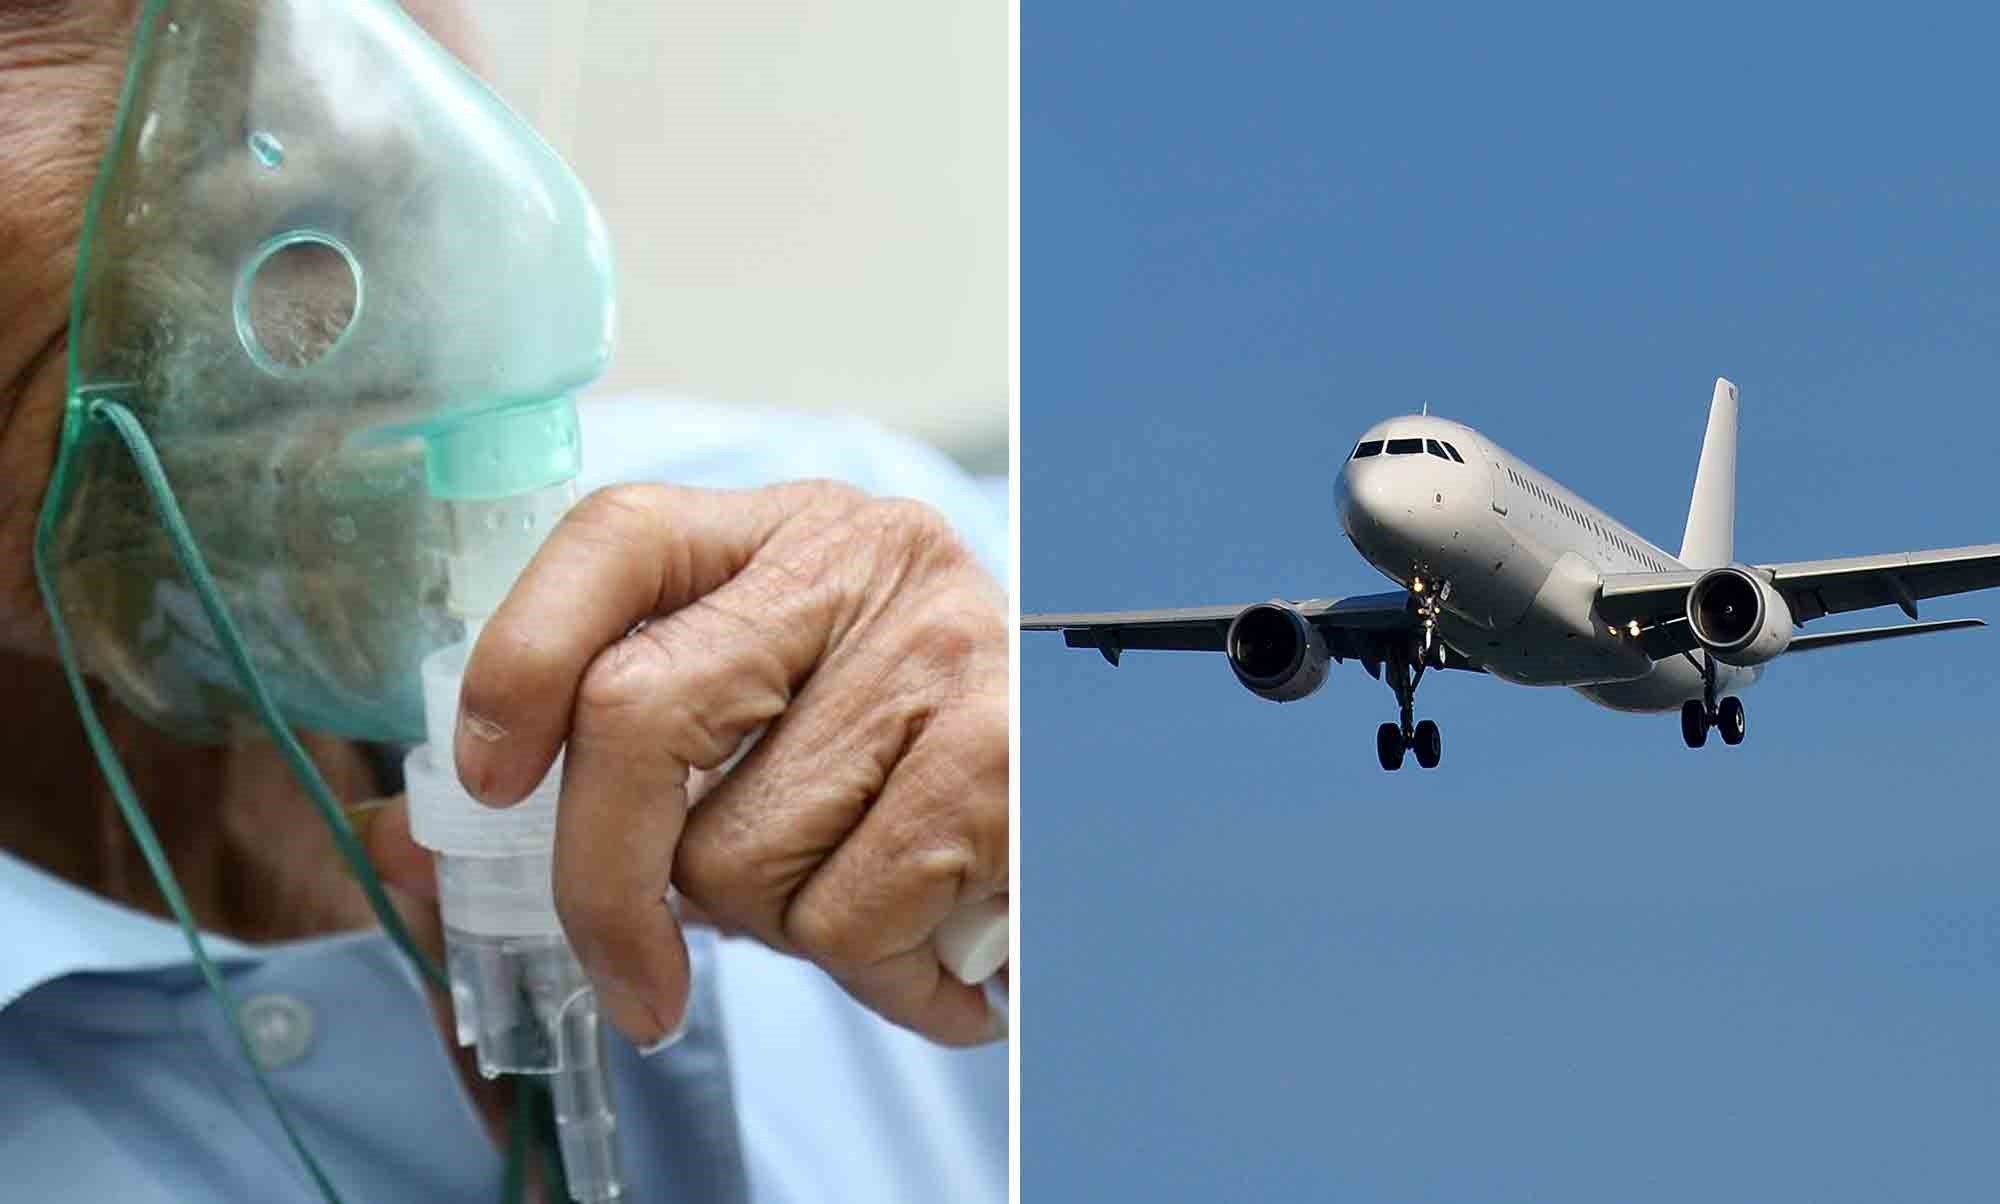 An estimated 12% of in-flight emergencies are attributed to respiratory illnesses.